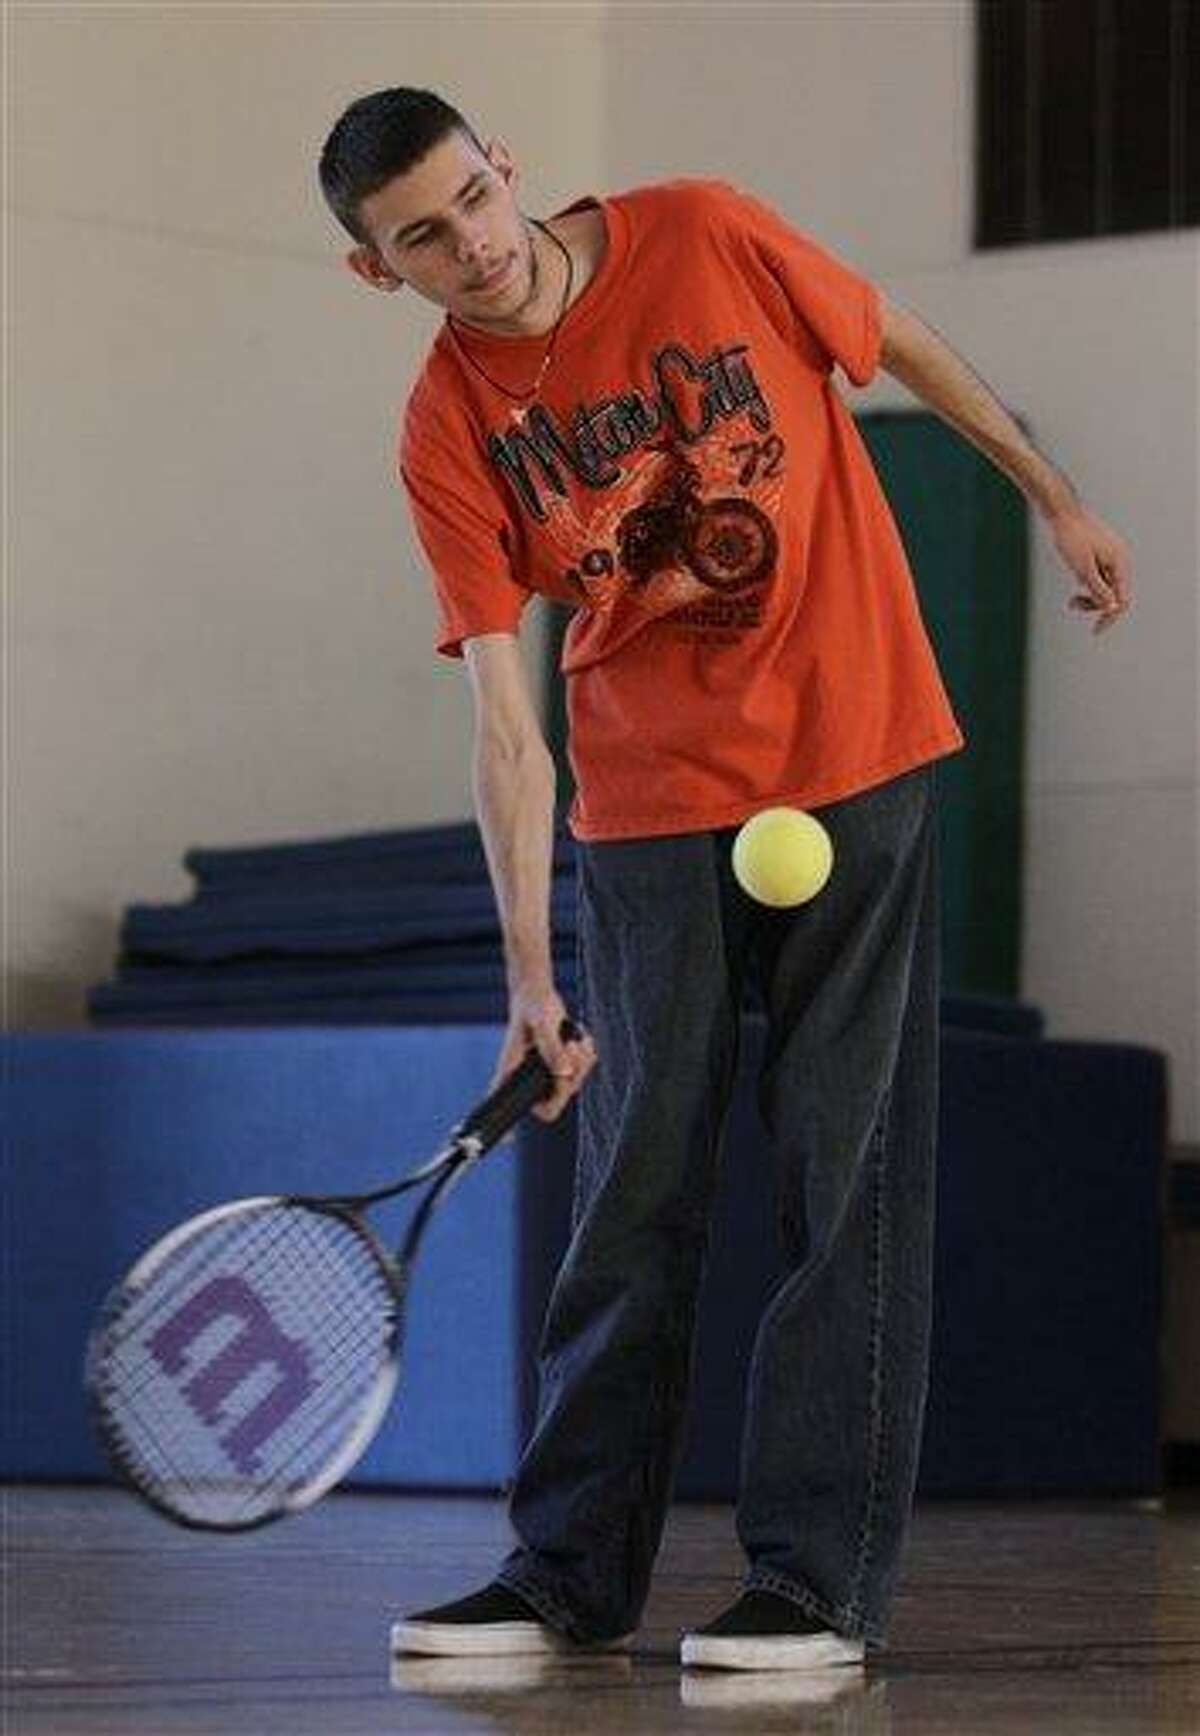 Austin Benavidez, who is blind, returns a volley using an oversized ball filled with ball bearings at the California School for the Blind in Fremont, Calif. Students at the school are learning to play tennis, and expanding the boundaries of what the blind can do while offering new insights into the human mind. They must turn their ears into eyes, listening for the ball's bounce to figure out where to swing their rackets. (AP Photo/Ben Margot)